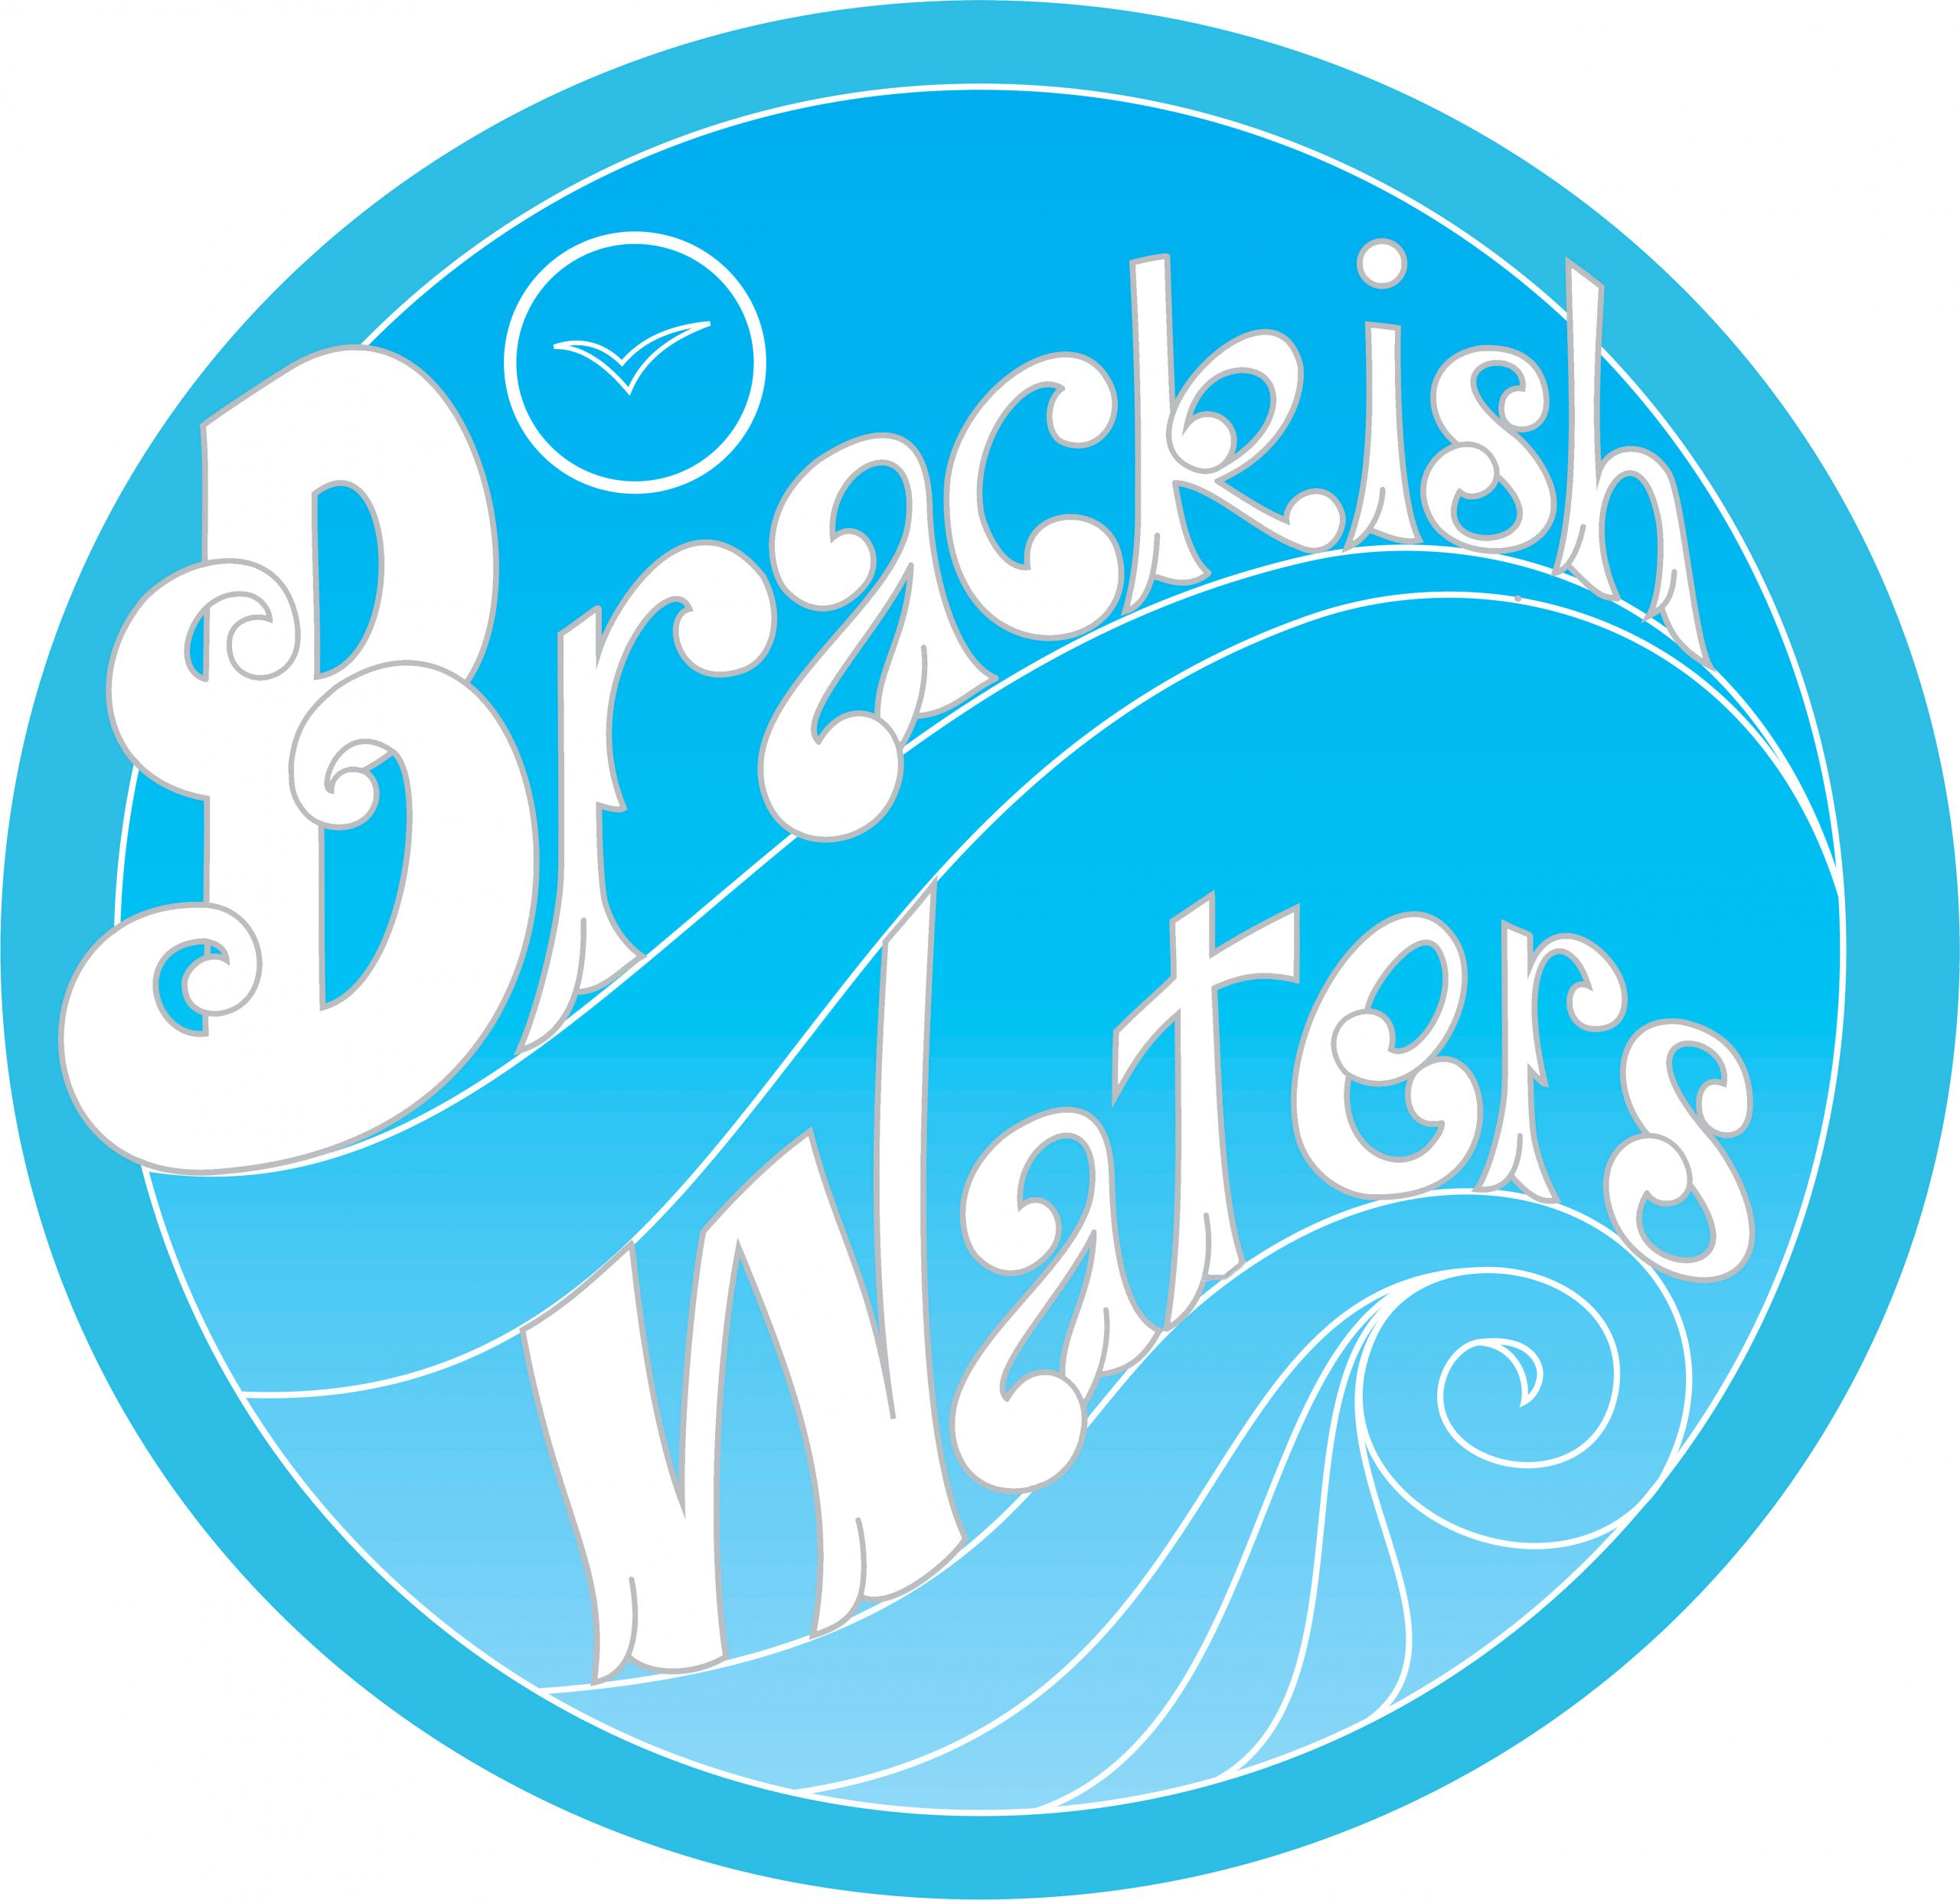 Brackish Waters Logo - Jpeg